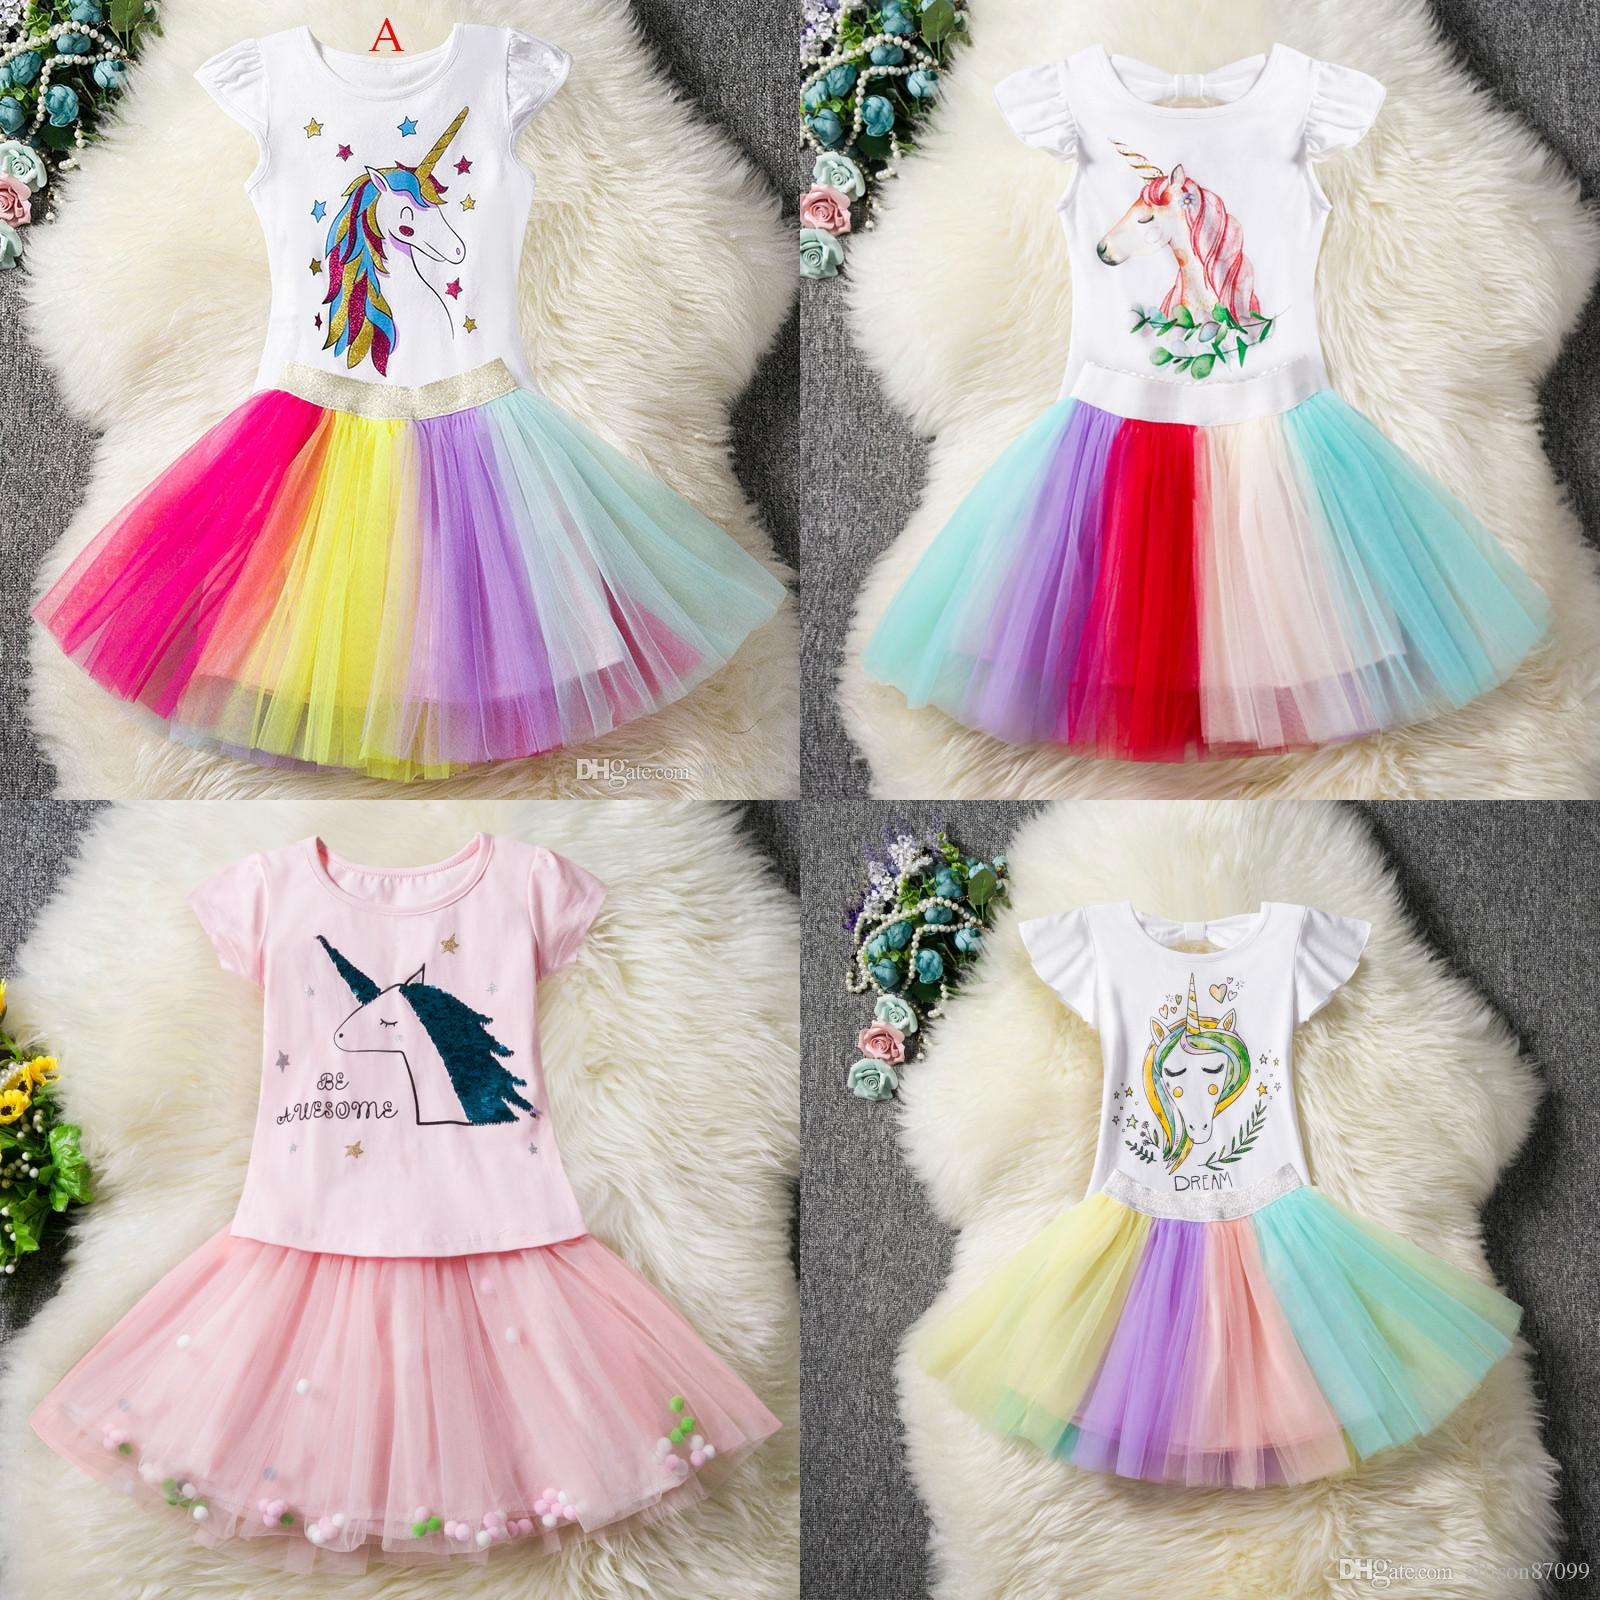 493eb1ad1 2019 Ins Baby Girls Unicorn Outfits Dress Cotton Children Top ...